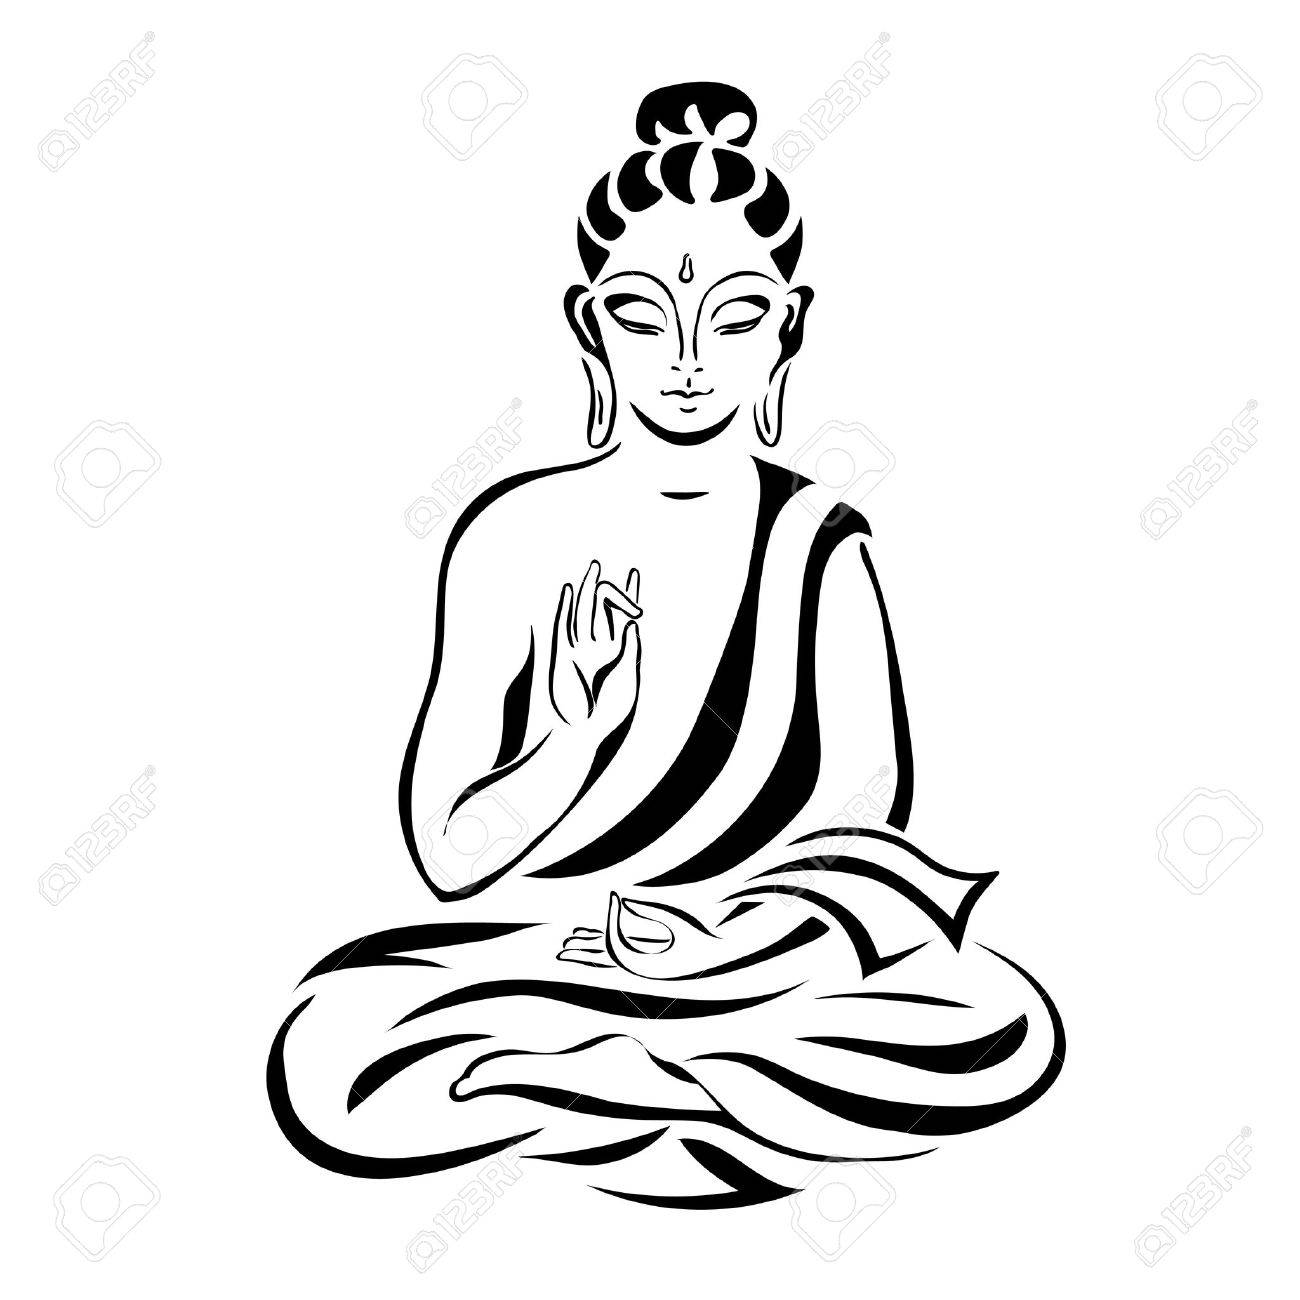 Buddha in the lotus position black outlines isolated on white vintage vector decorative